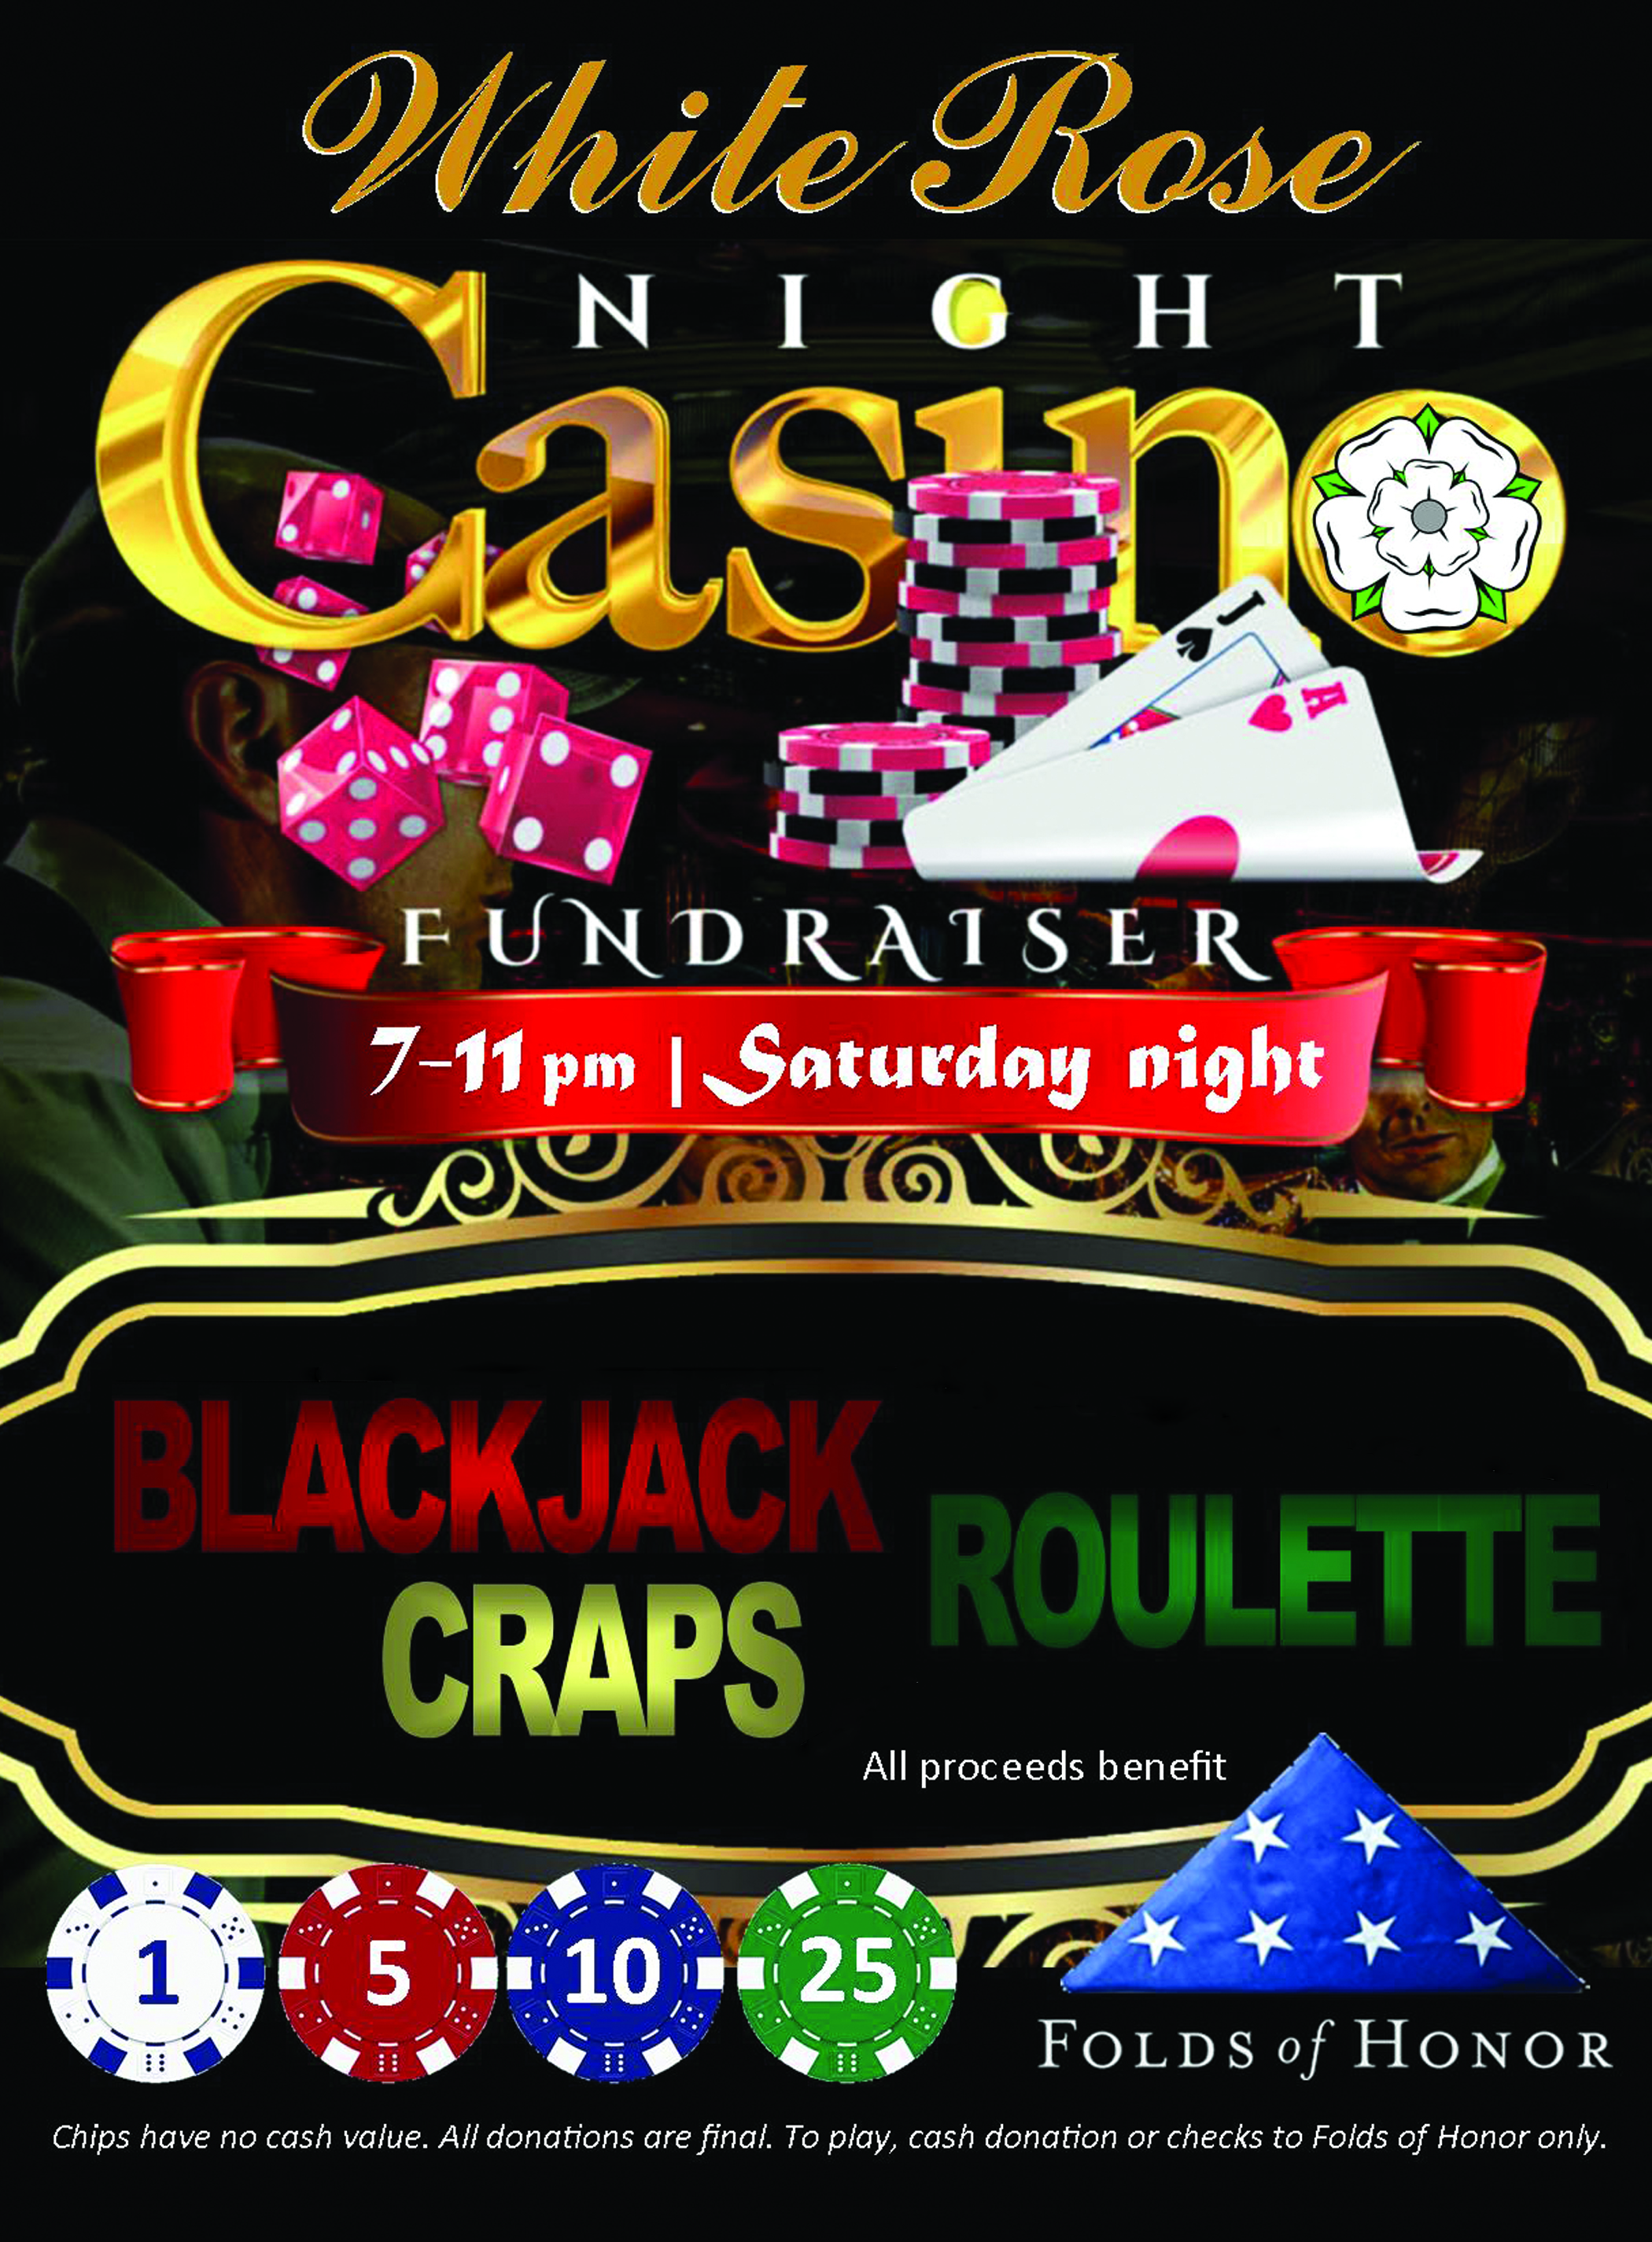 whiterosecasinonight